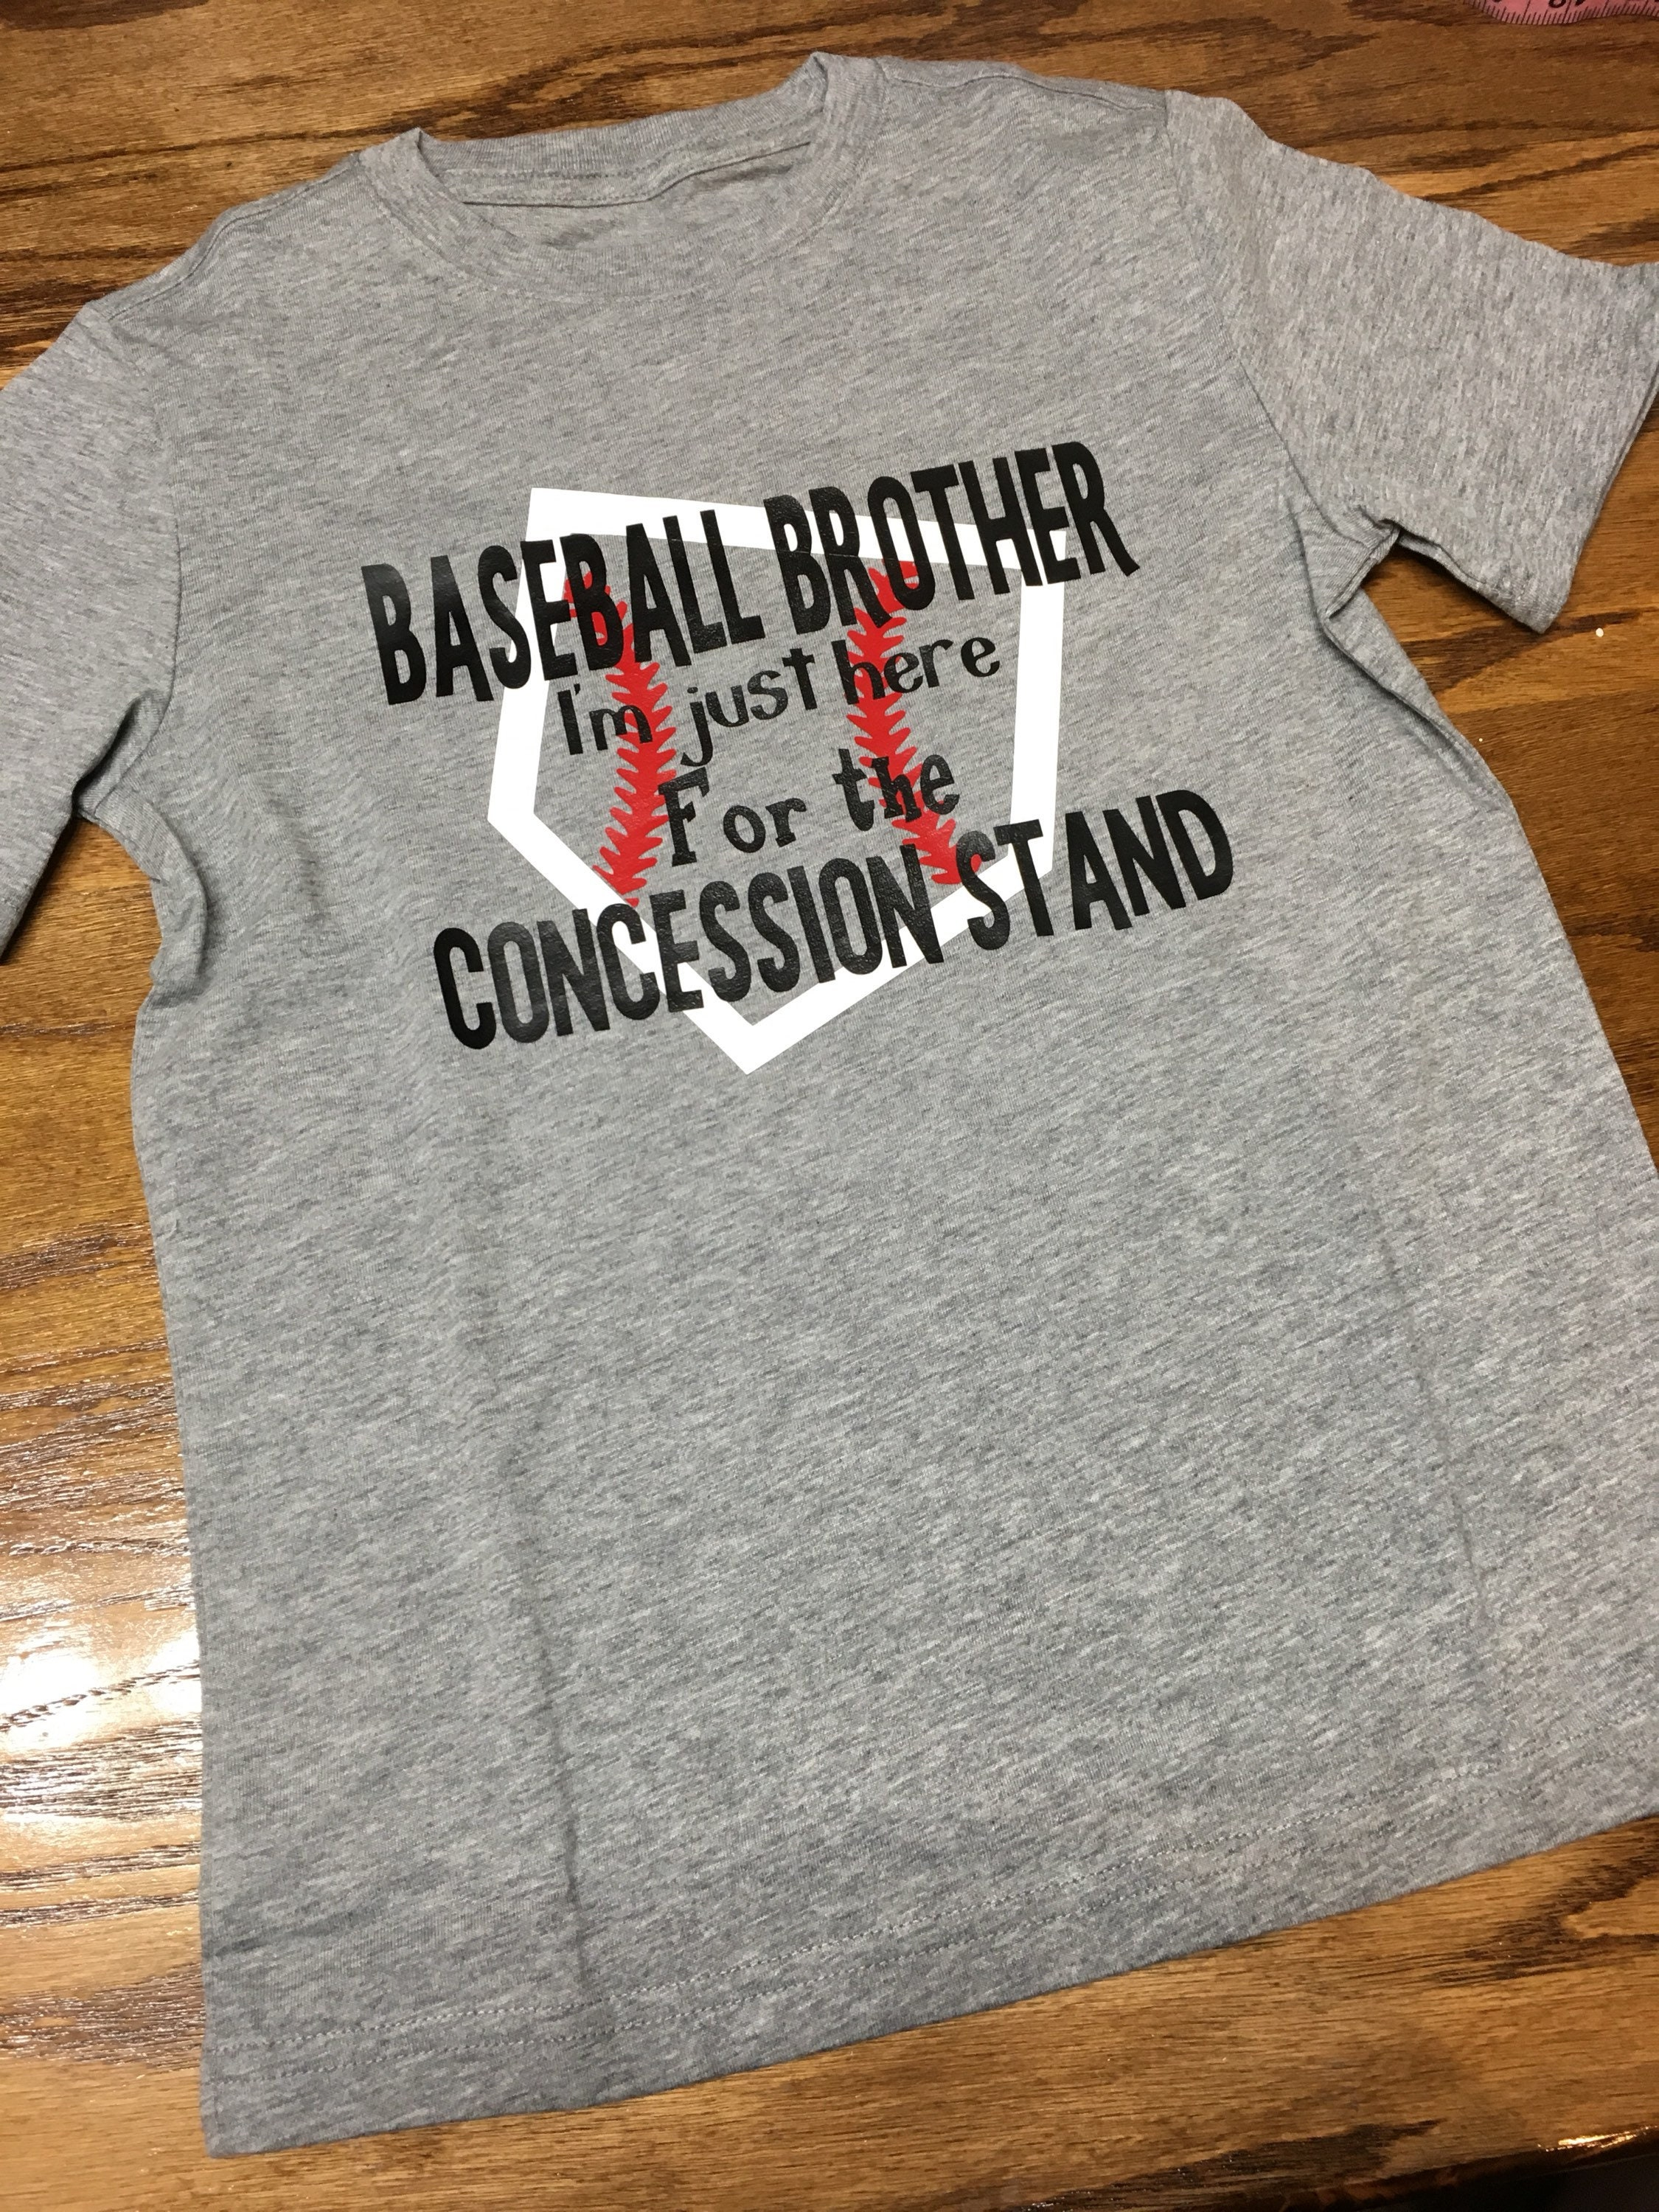 Just For Fun Drawings Education: Baseball Brother Shirt I'm Just Here For The Concession